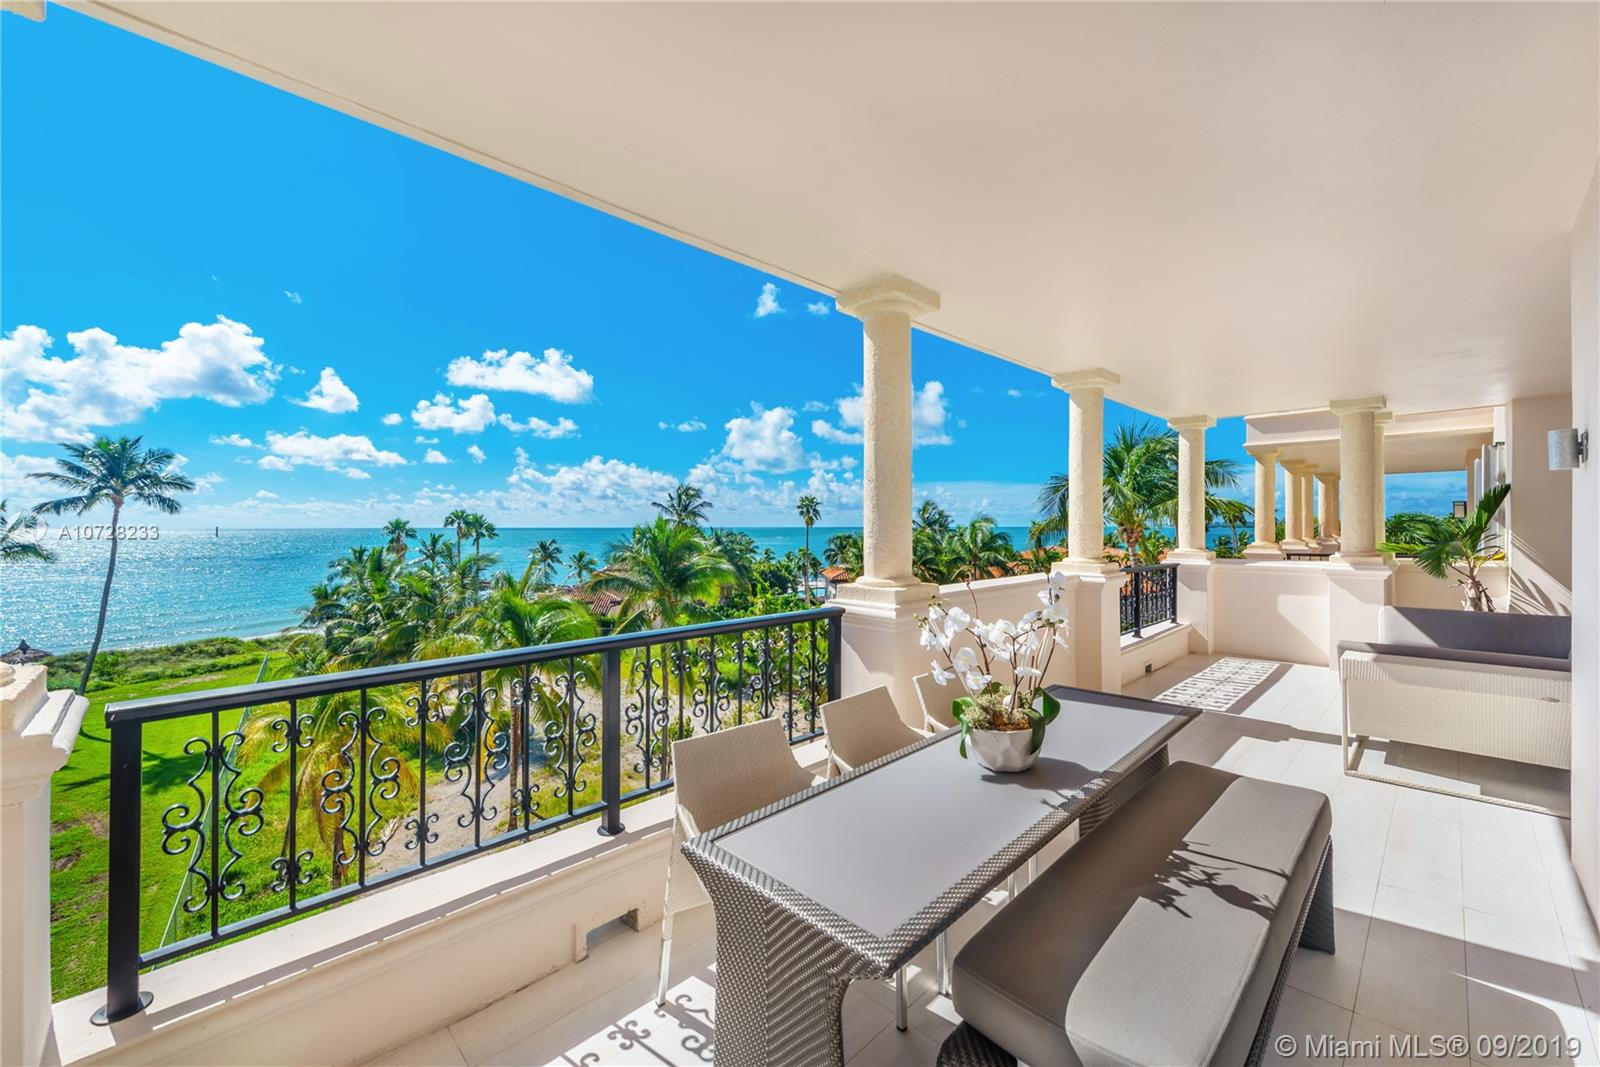 19243 Fisher Island Dr #19243